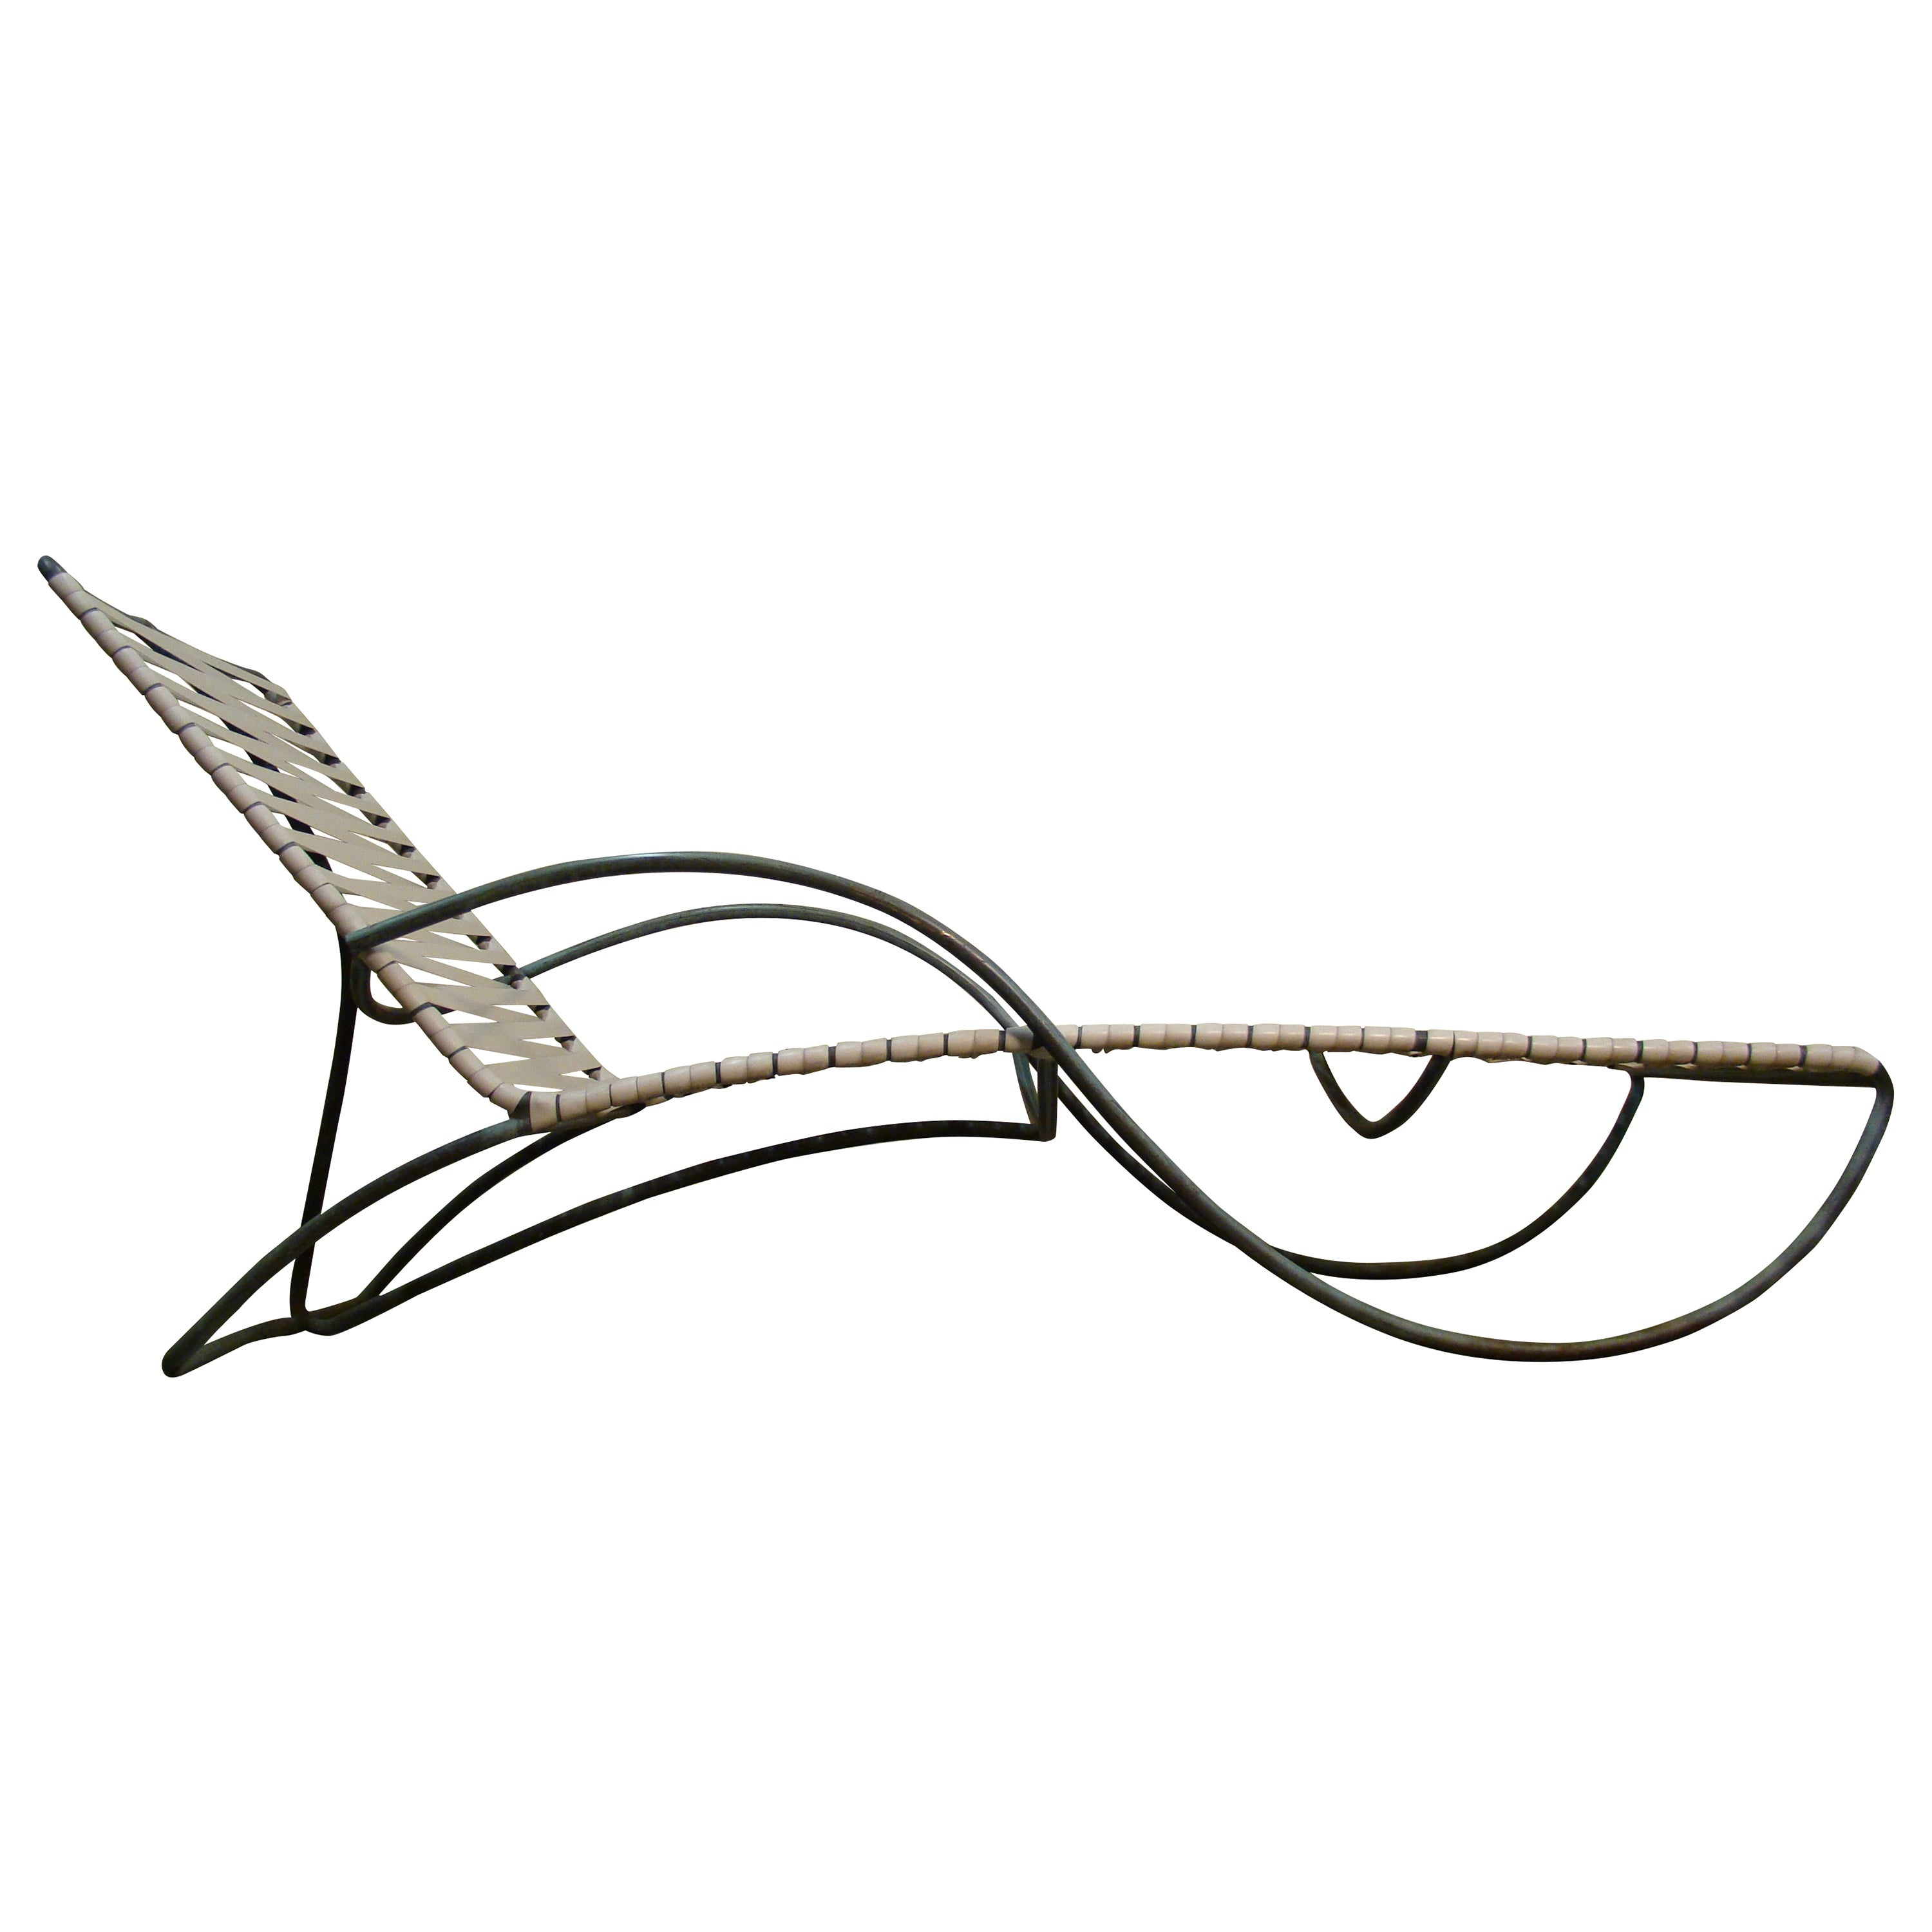 Chaise Lounge '#1' by Walter Lamb for Brown-Jordan Outdoor in Bronze Tubing